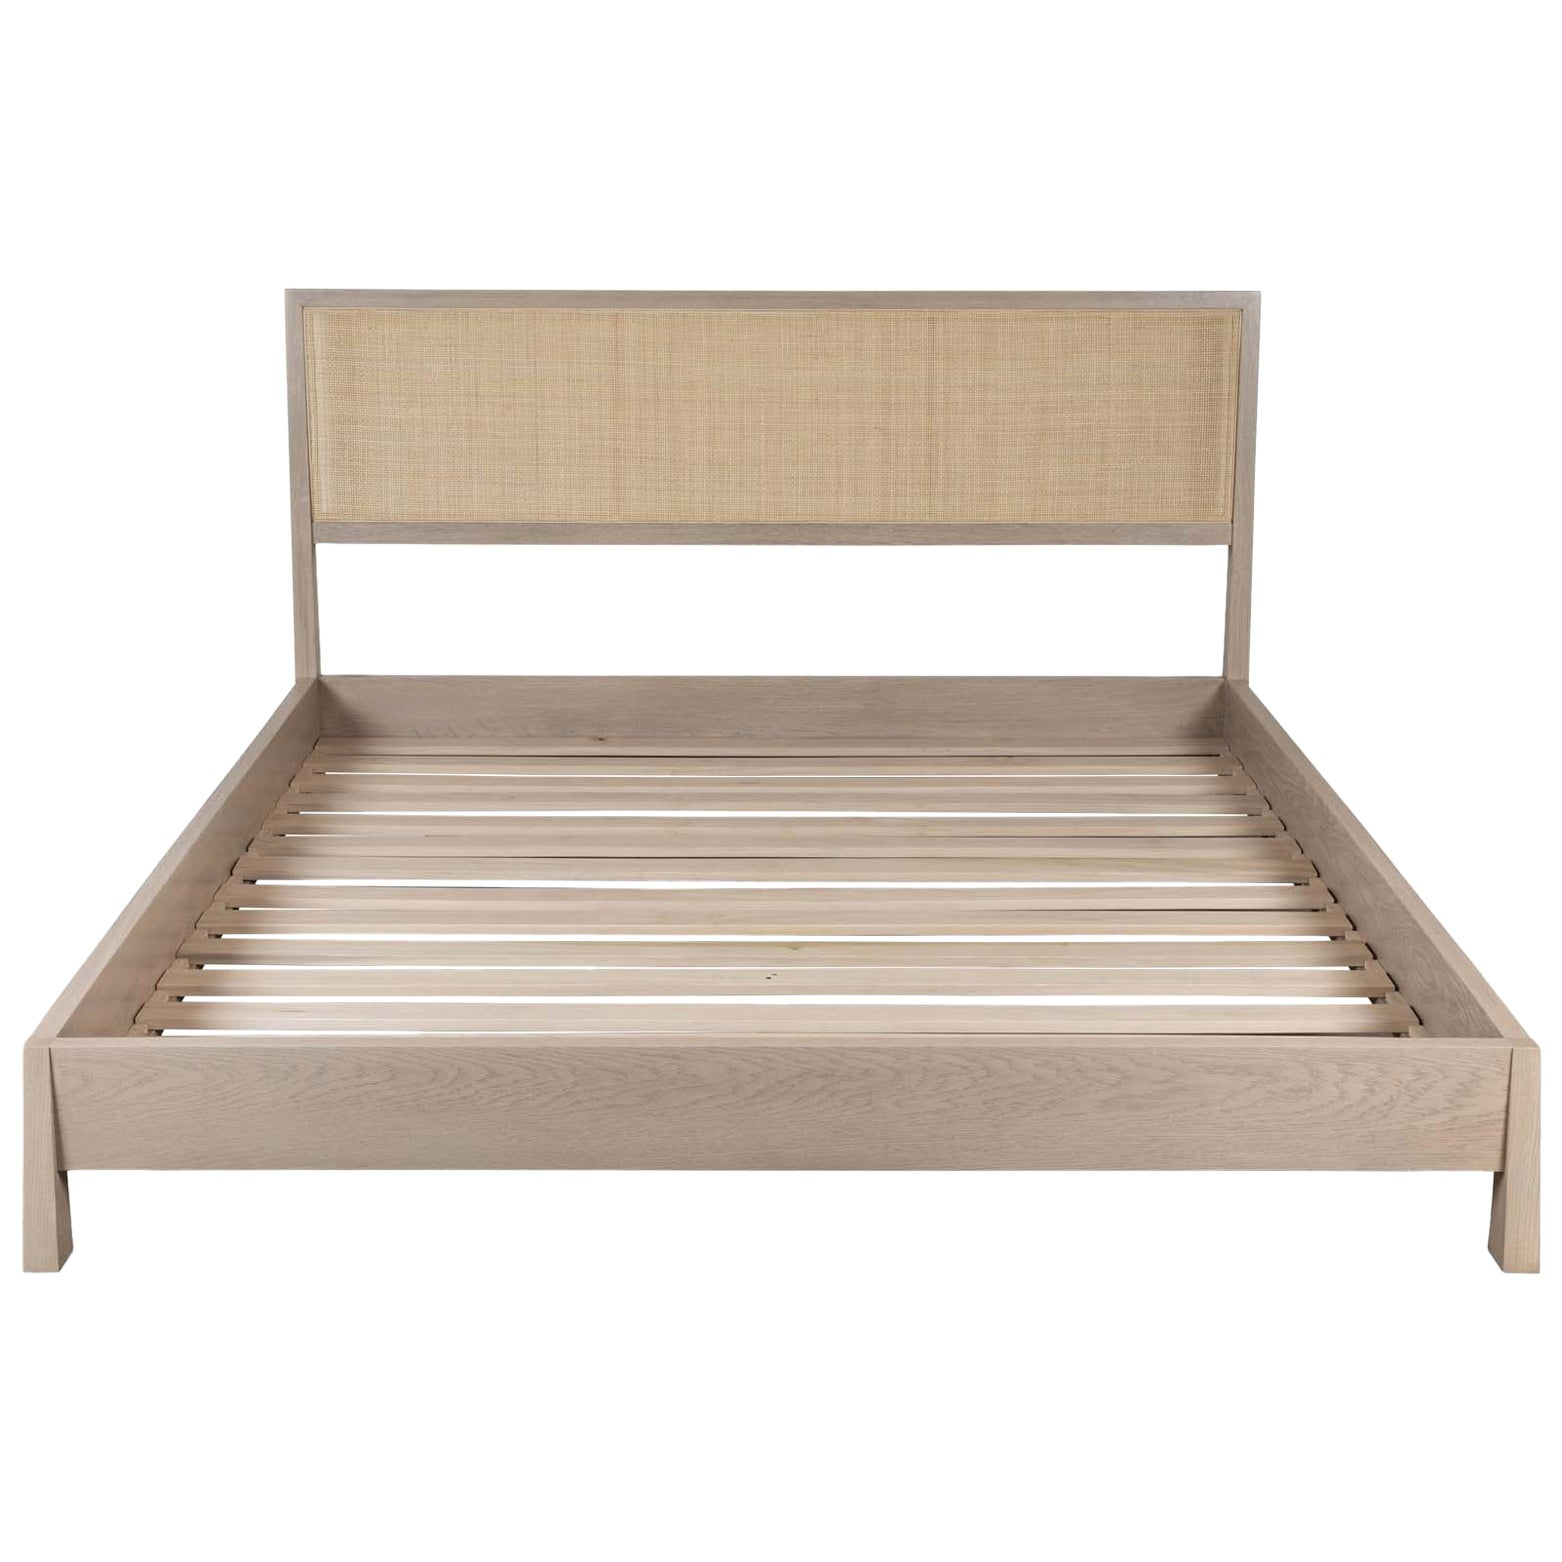 White Washed Oak Caned Bed by Lawson-Fenning, Cal King